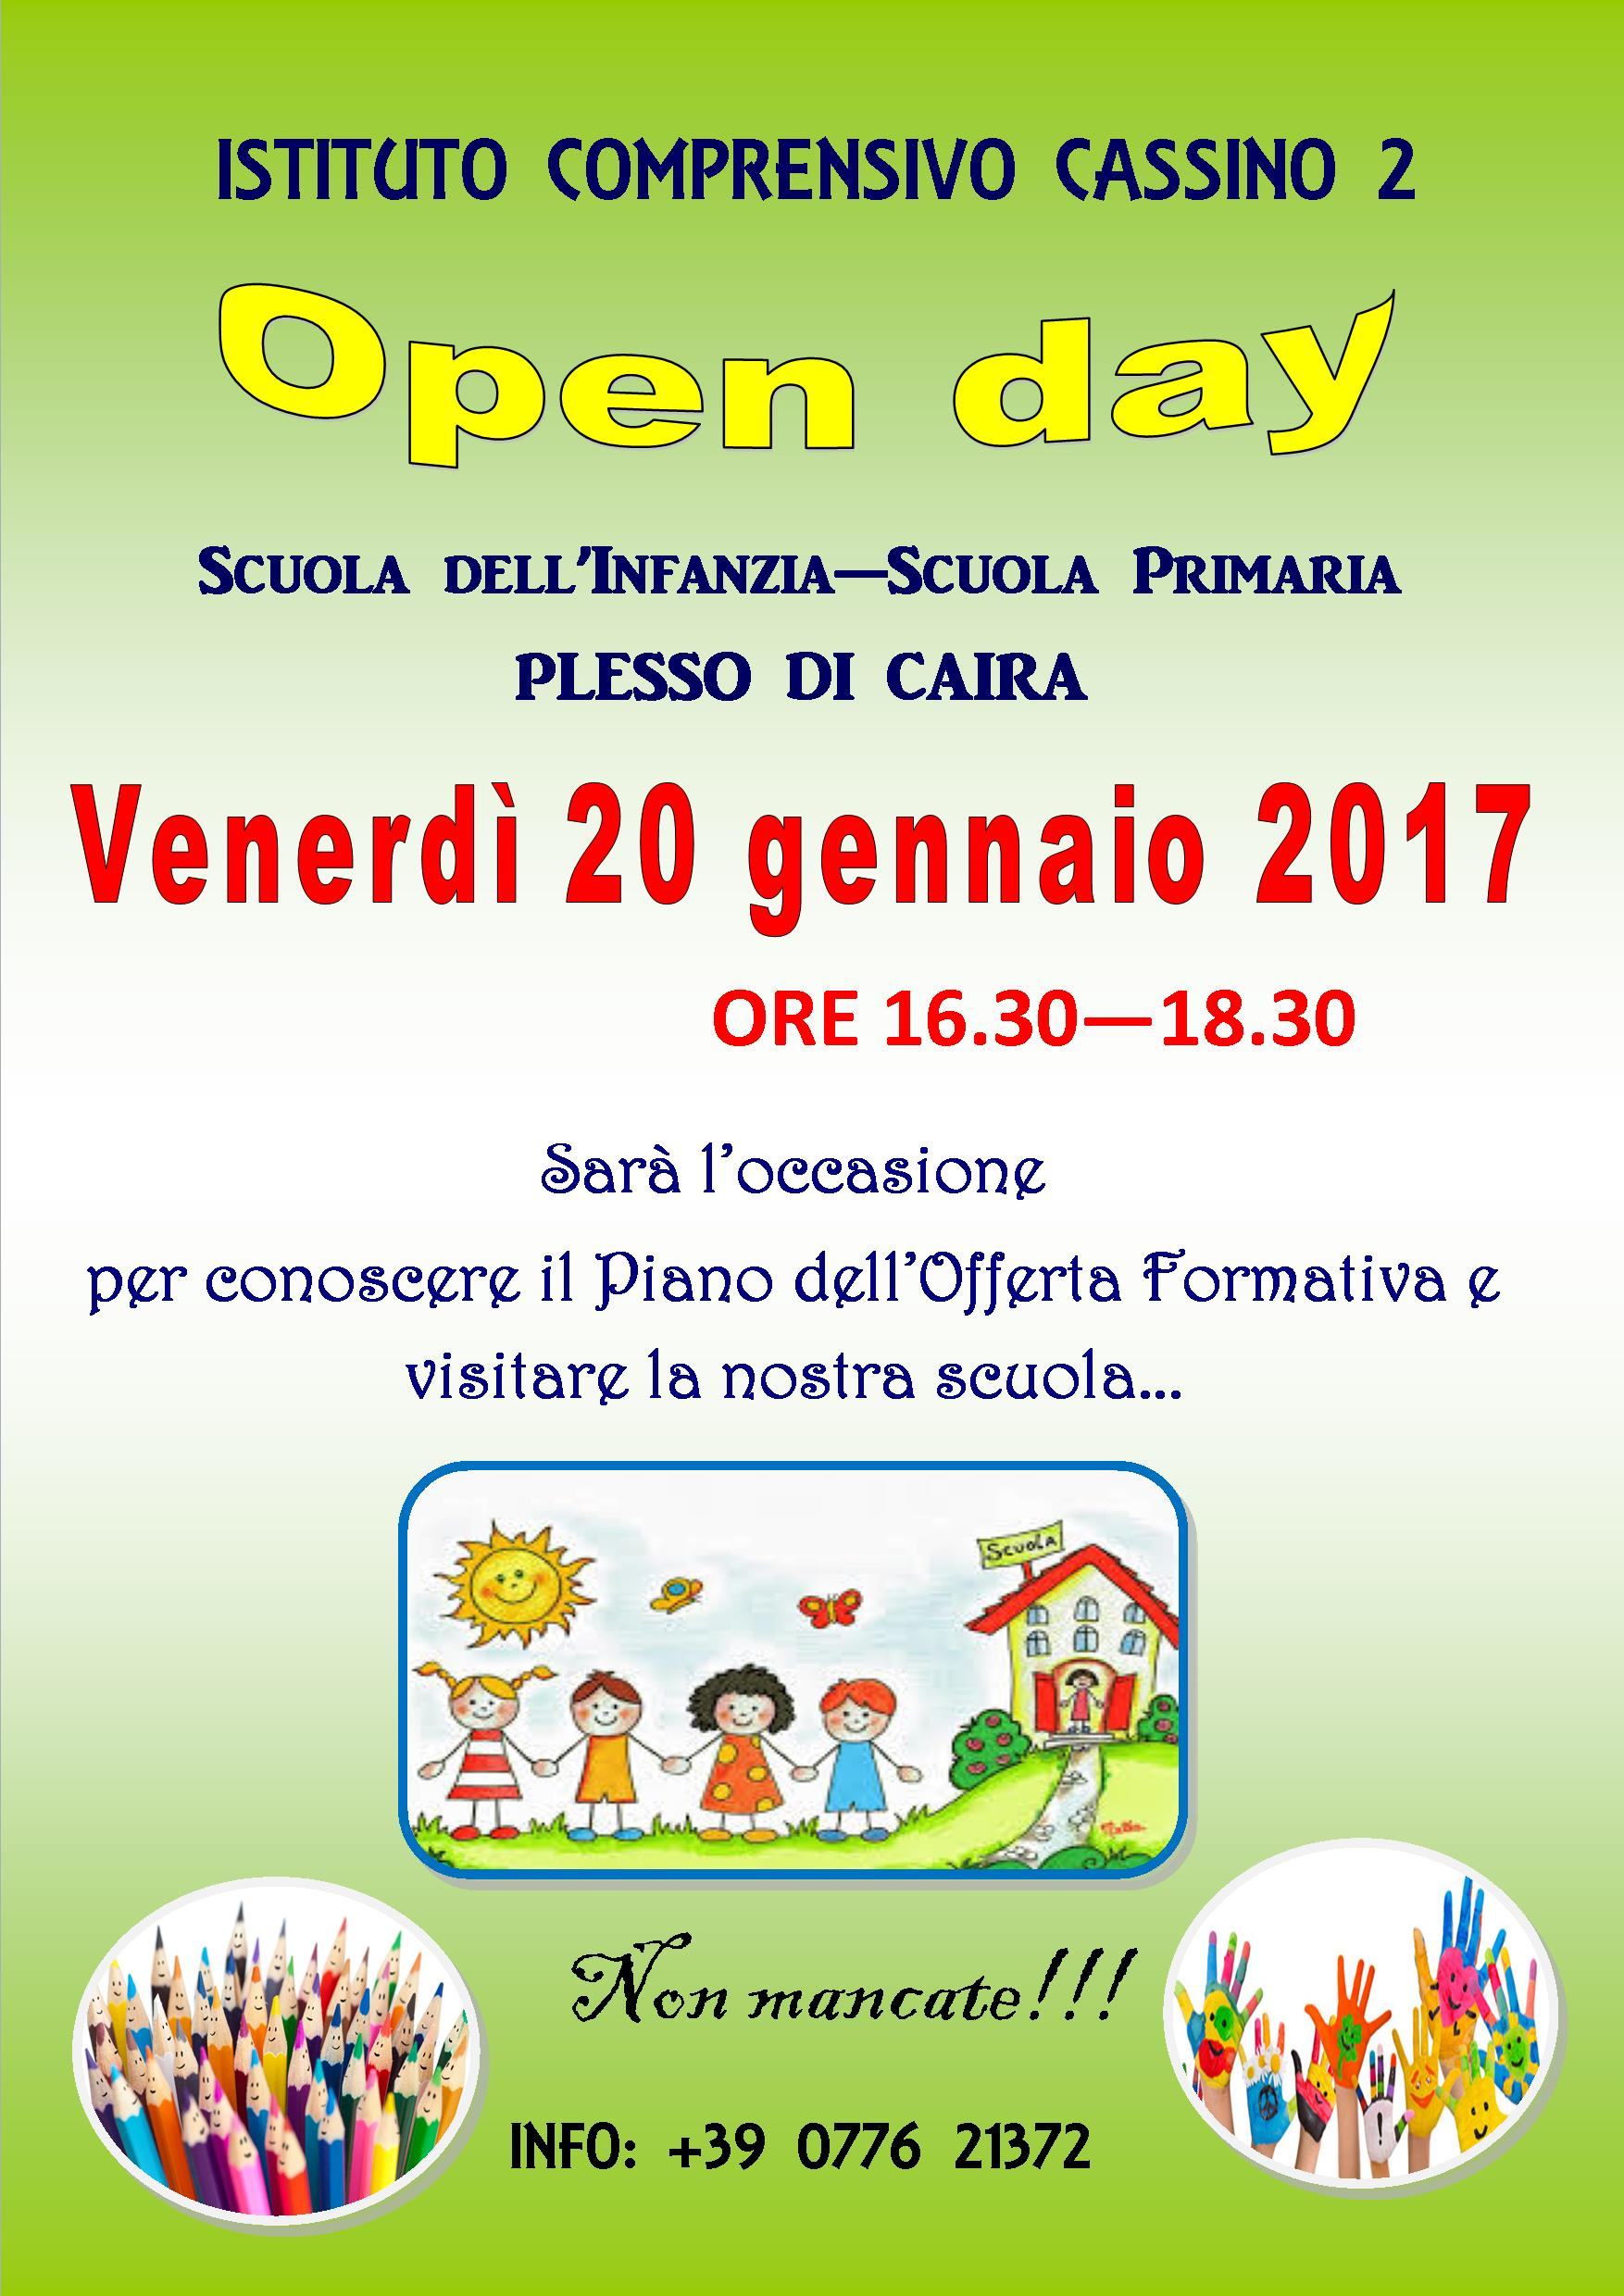 Open Day plesso Caira 2017.jpg